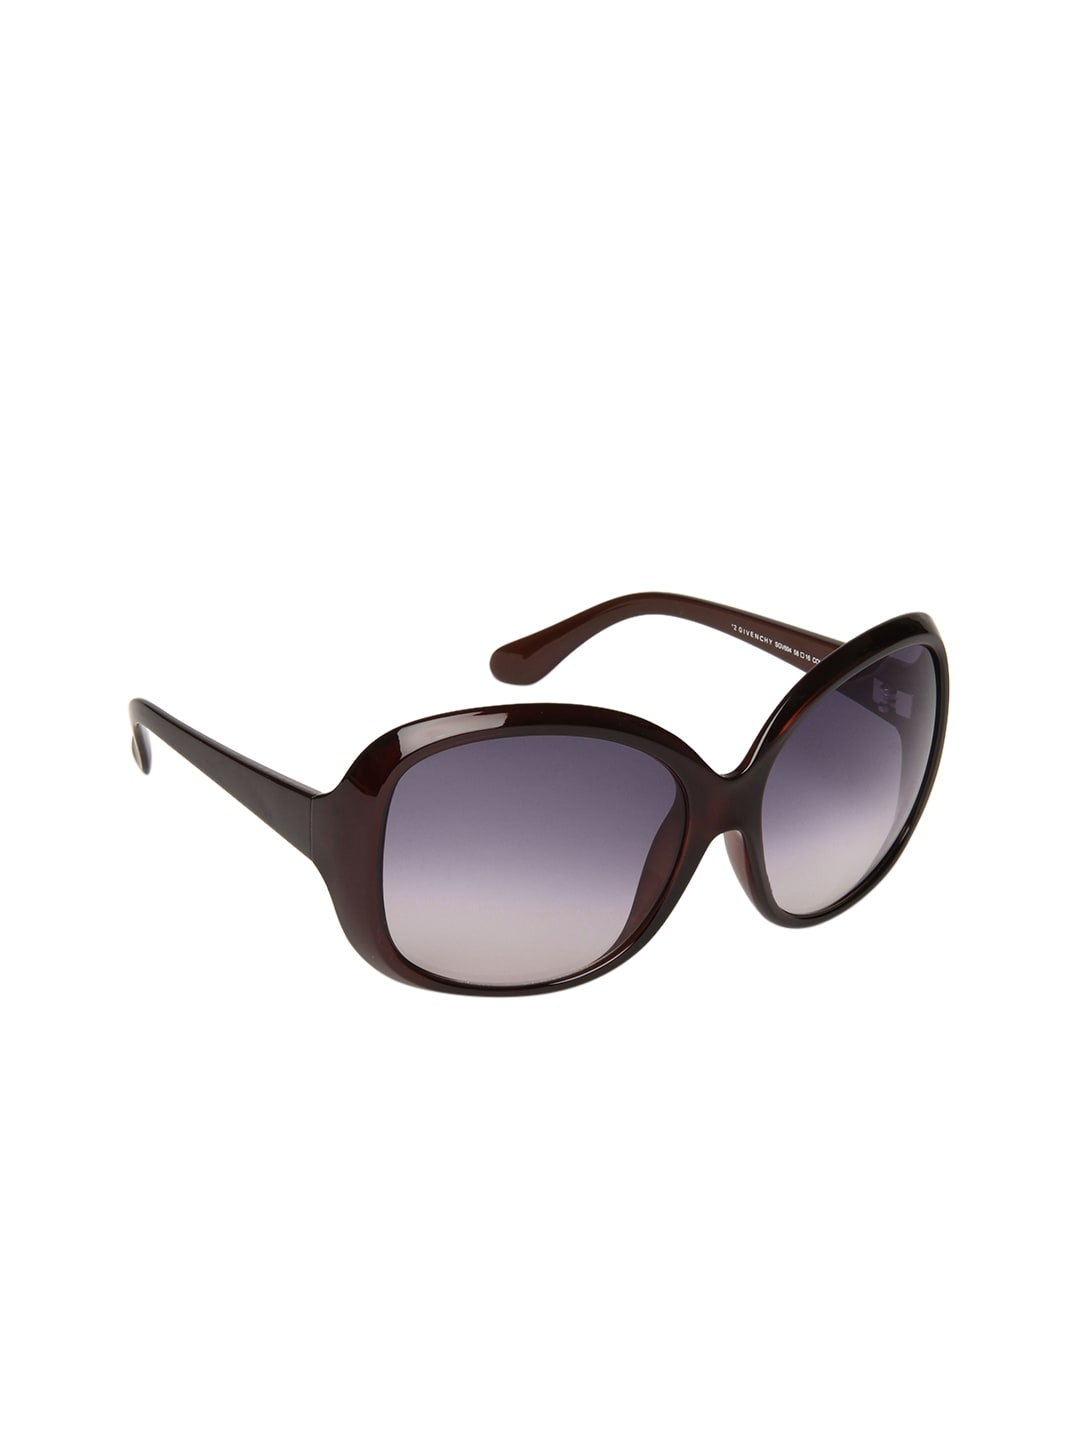 Givenchy Givenchy Women Sunglasses SGV-694 COL-07NC (Multicolor)